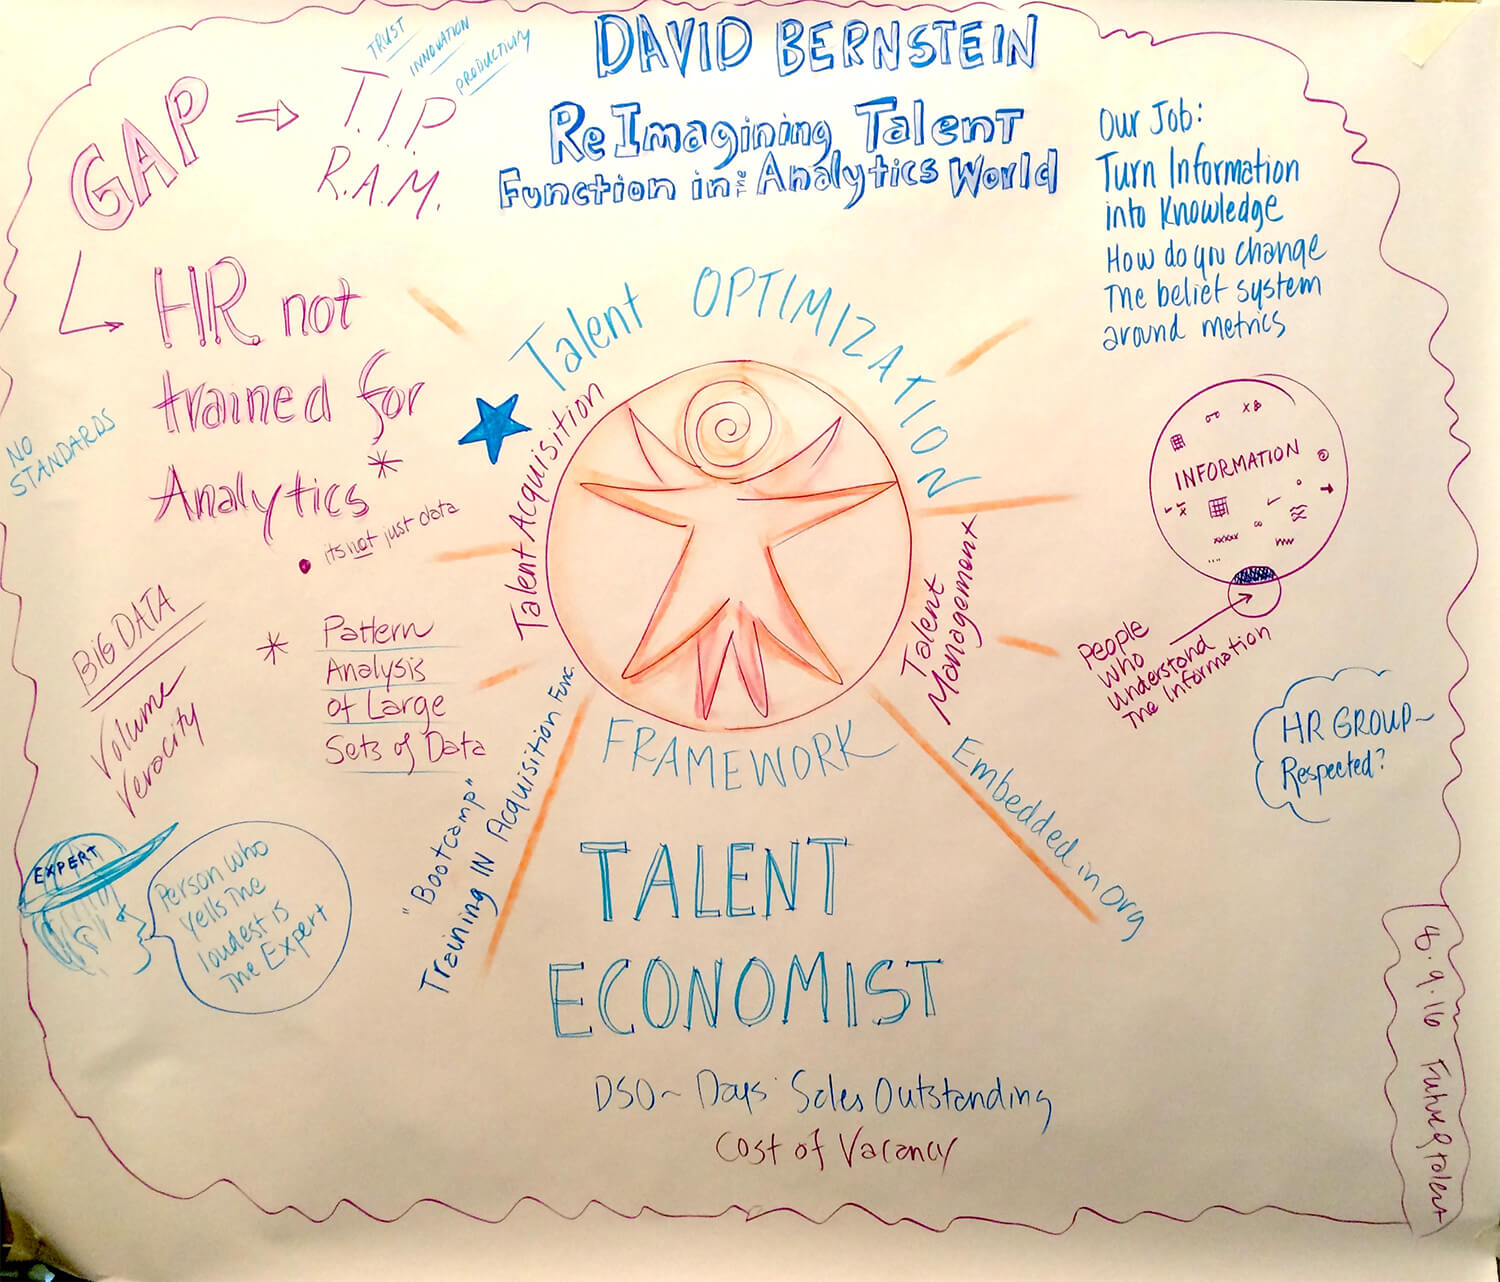 David Bernstein - Reimagining Talent Functions In An Analytics World - Future of Talent Retreat 2016